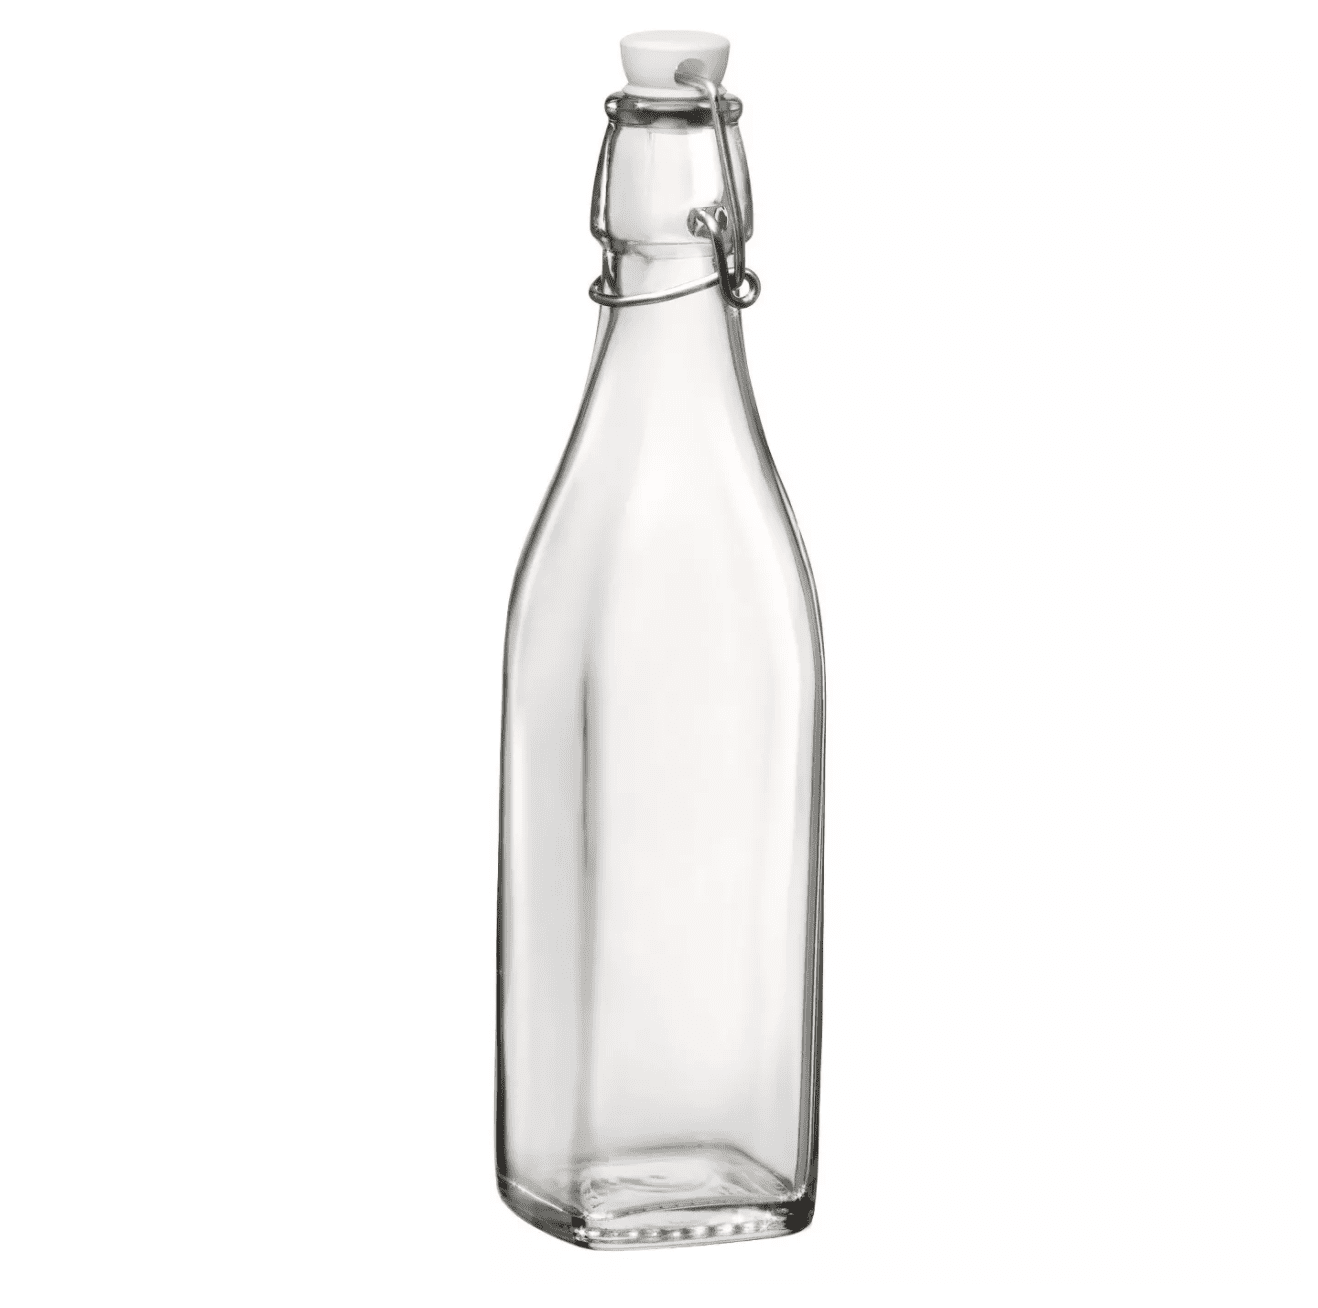 A glass bottle you can buy at Target